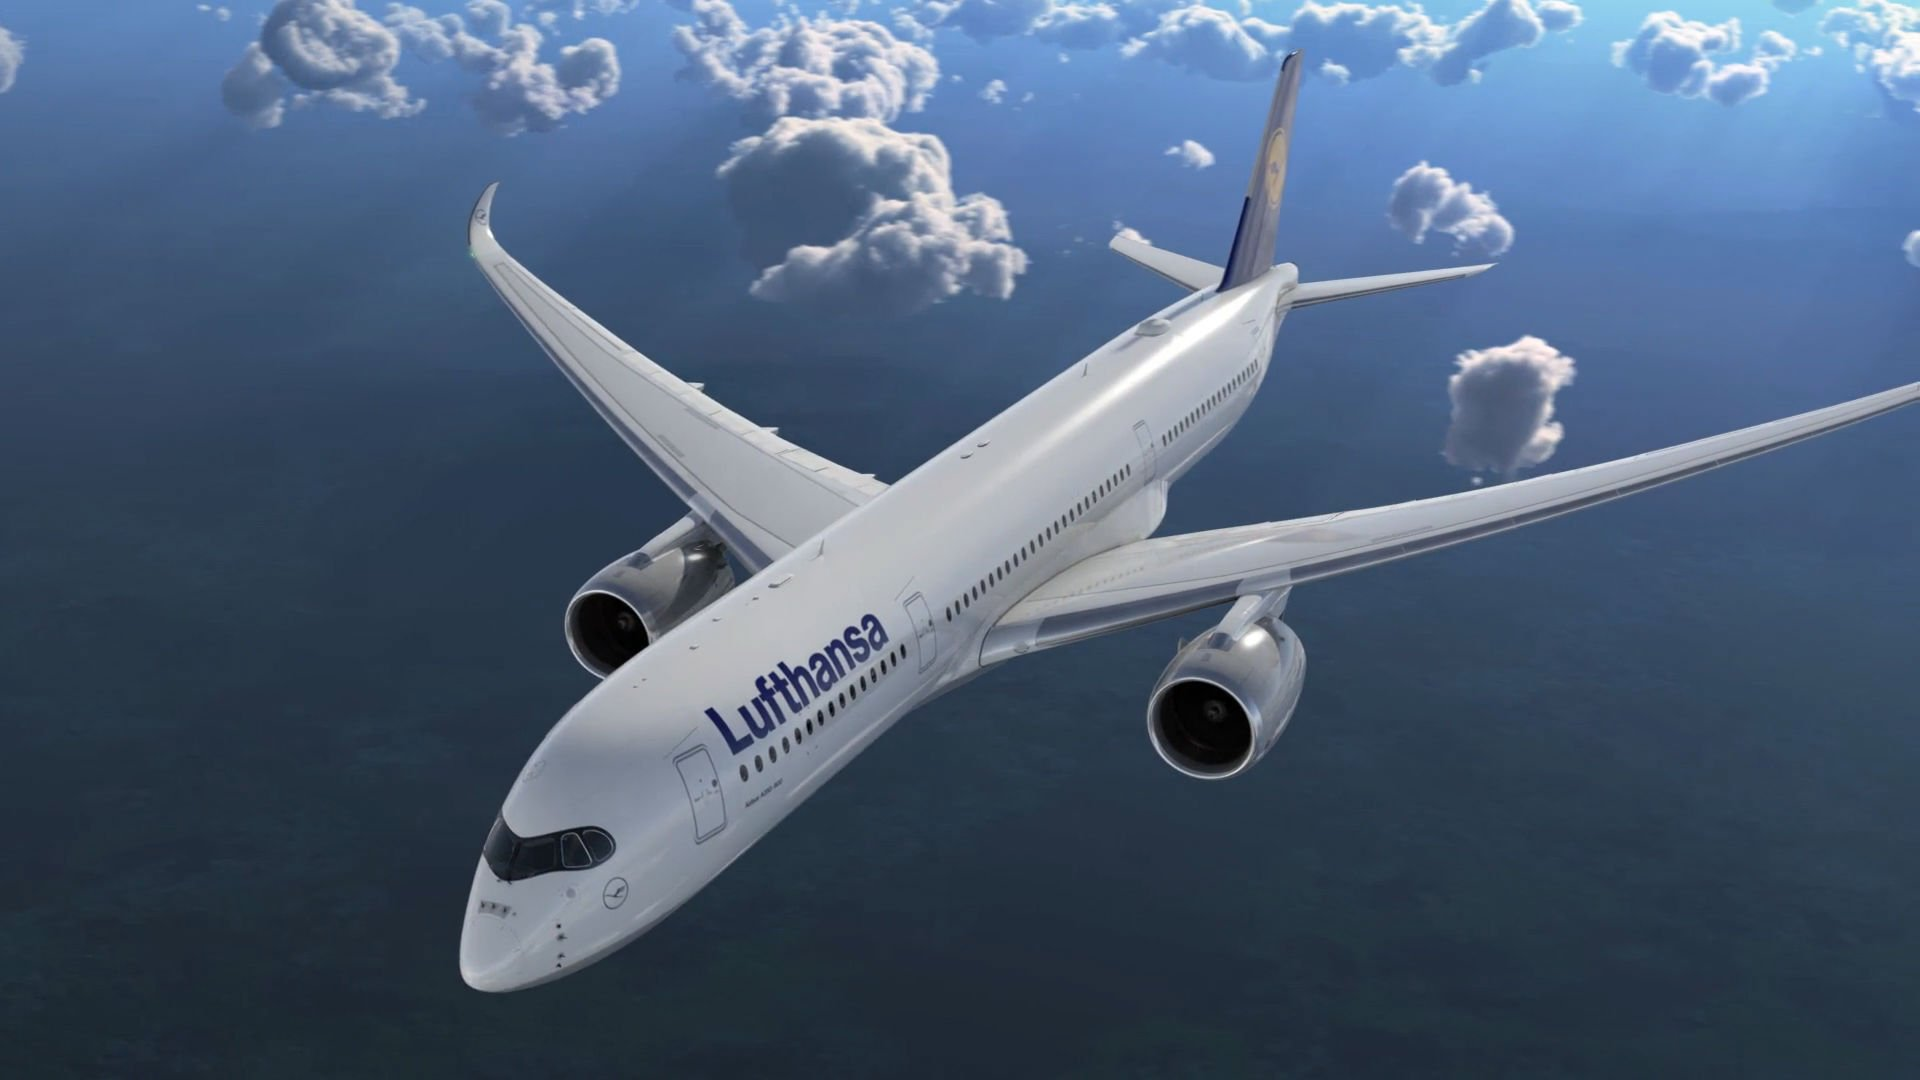 Interior Painting For Home In The Making Lufthansa S First A350 Xwb Airbus Video